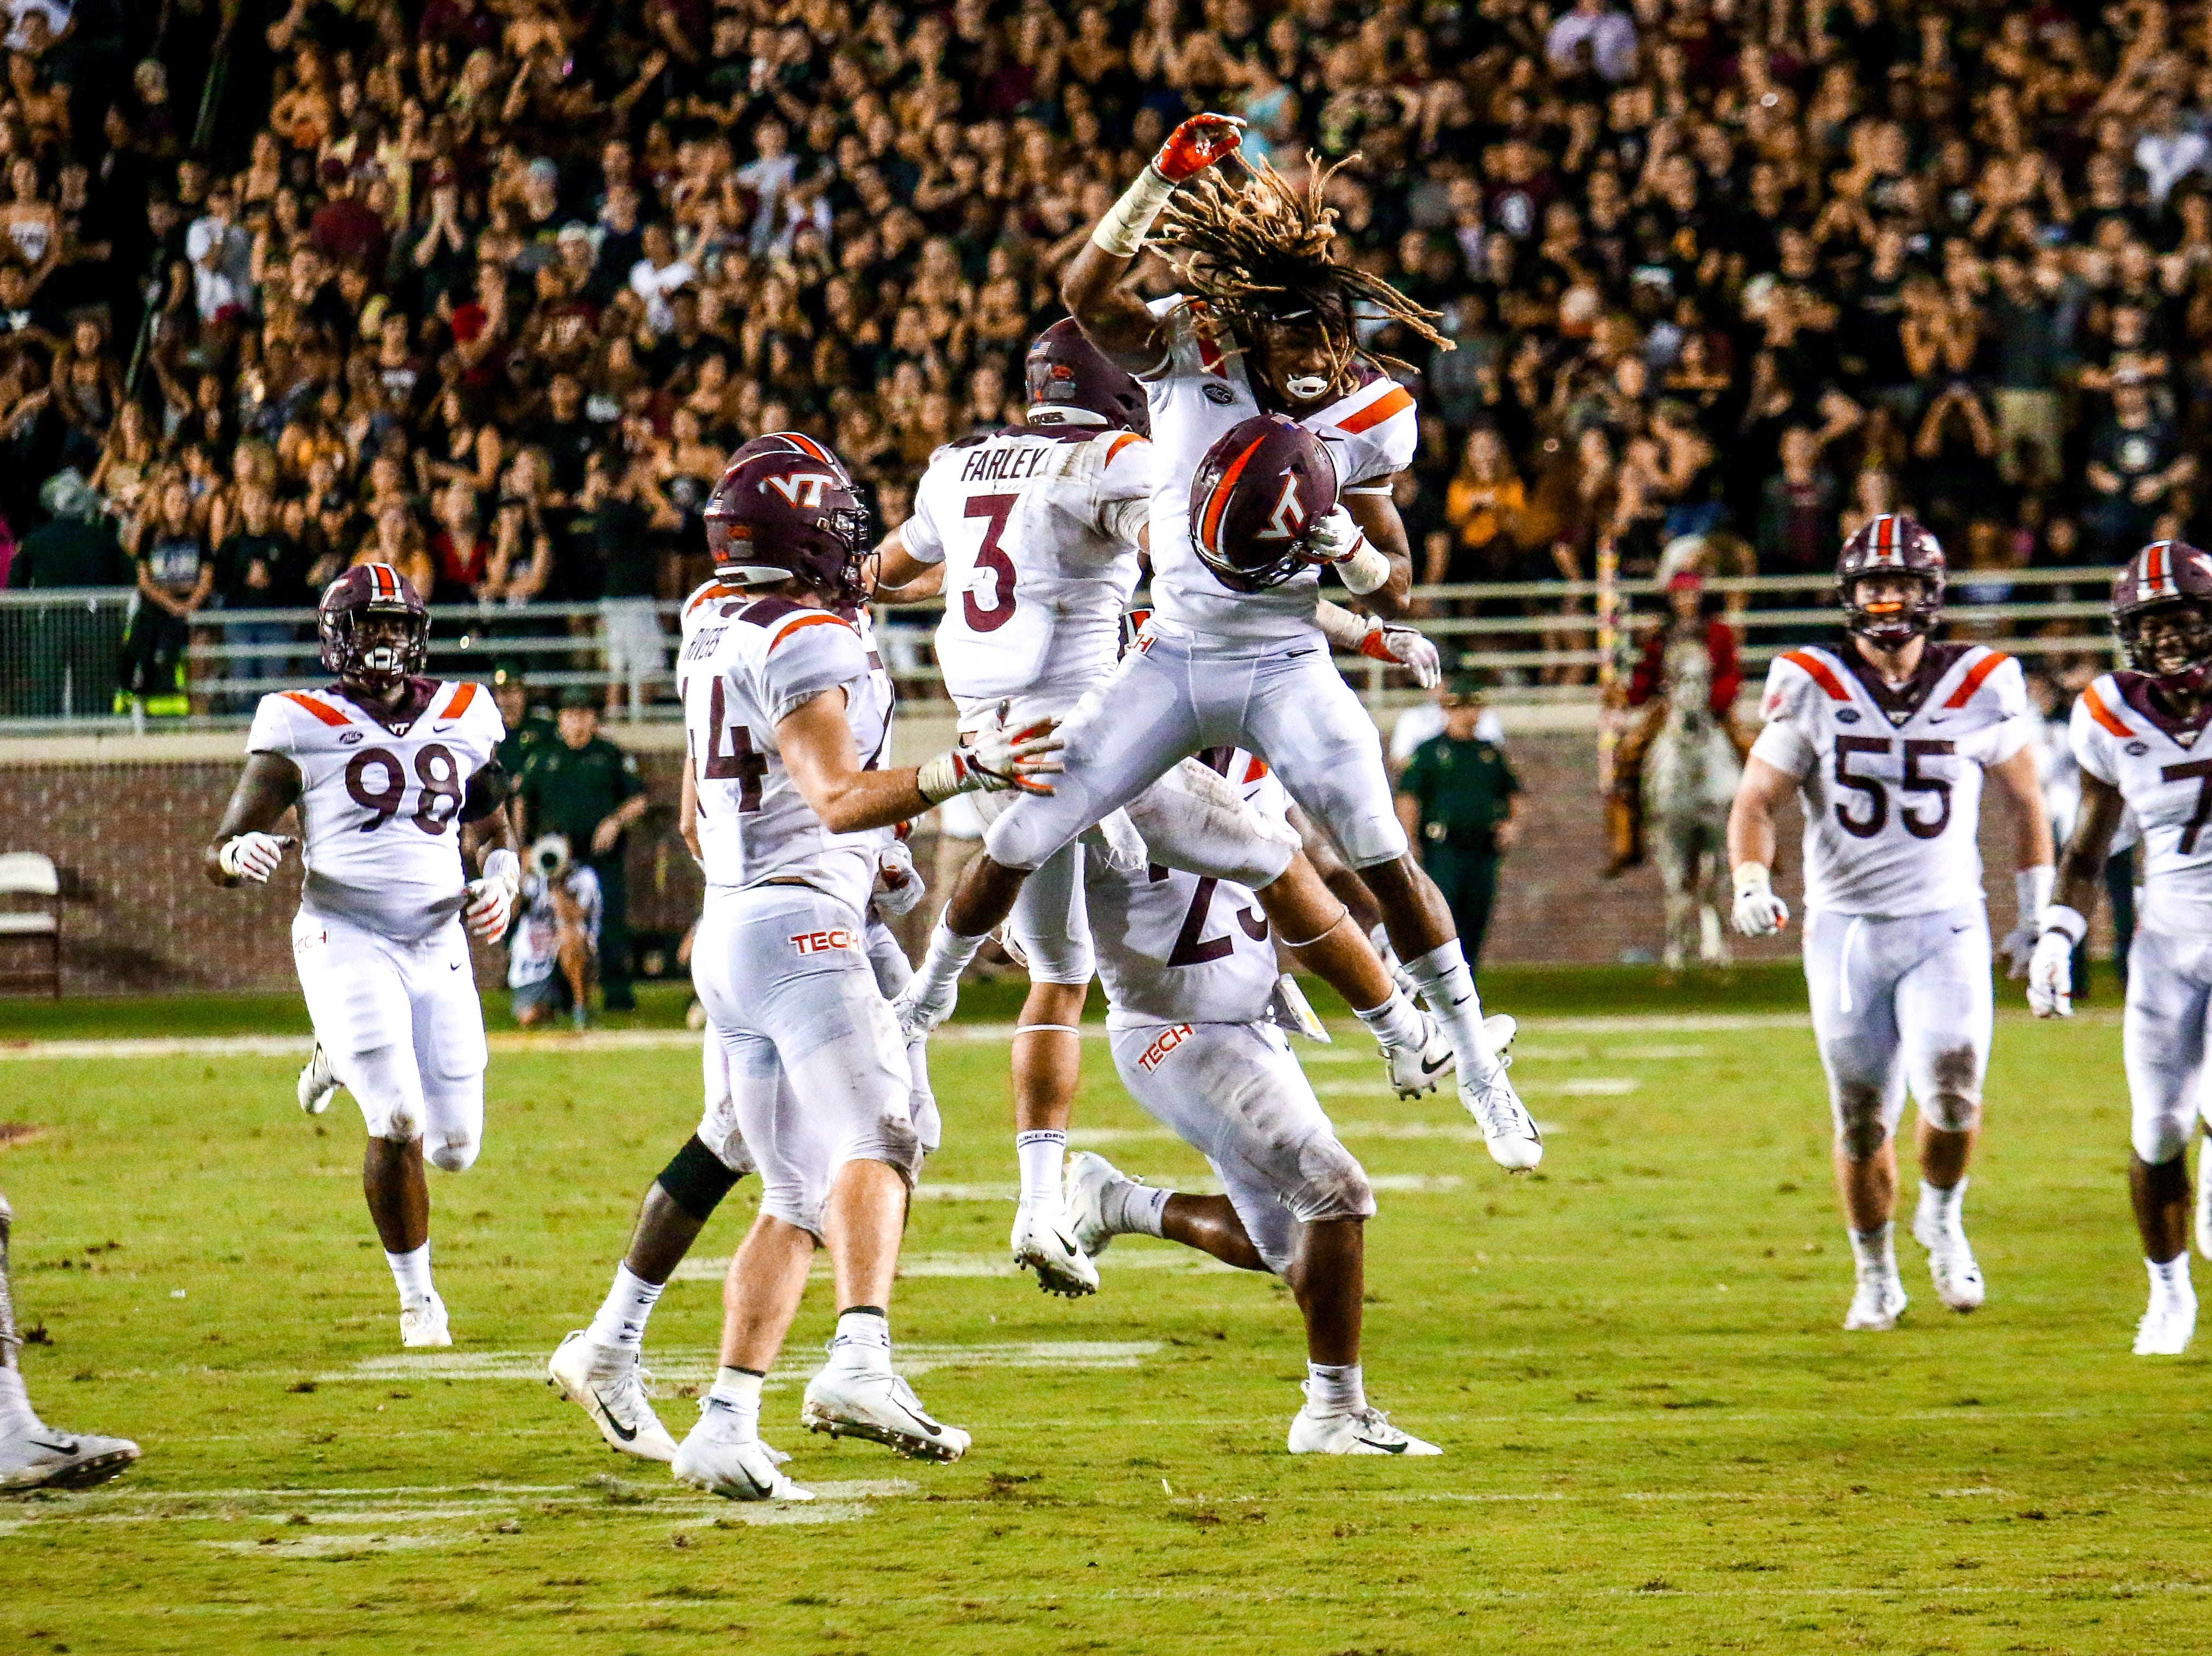 The Virginia Tech sidelines erupted after causing another big turnover in the second half against the Noles. Virginia Tech would go on to dominate the game on Monday, September 3rd at Doak Campbell stadium.